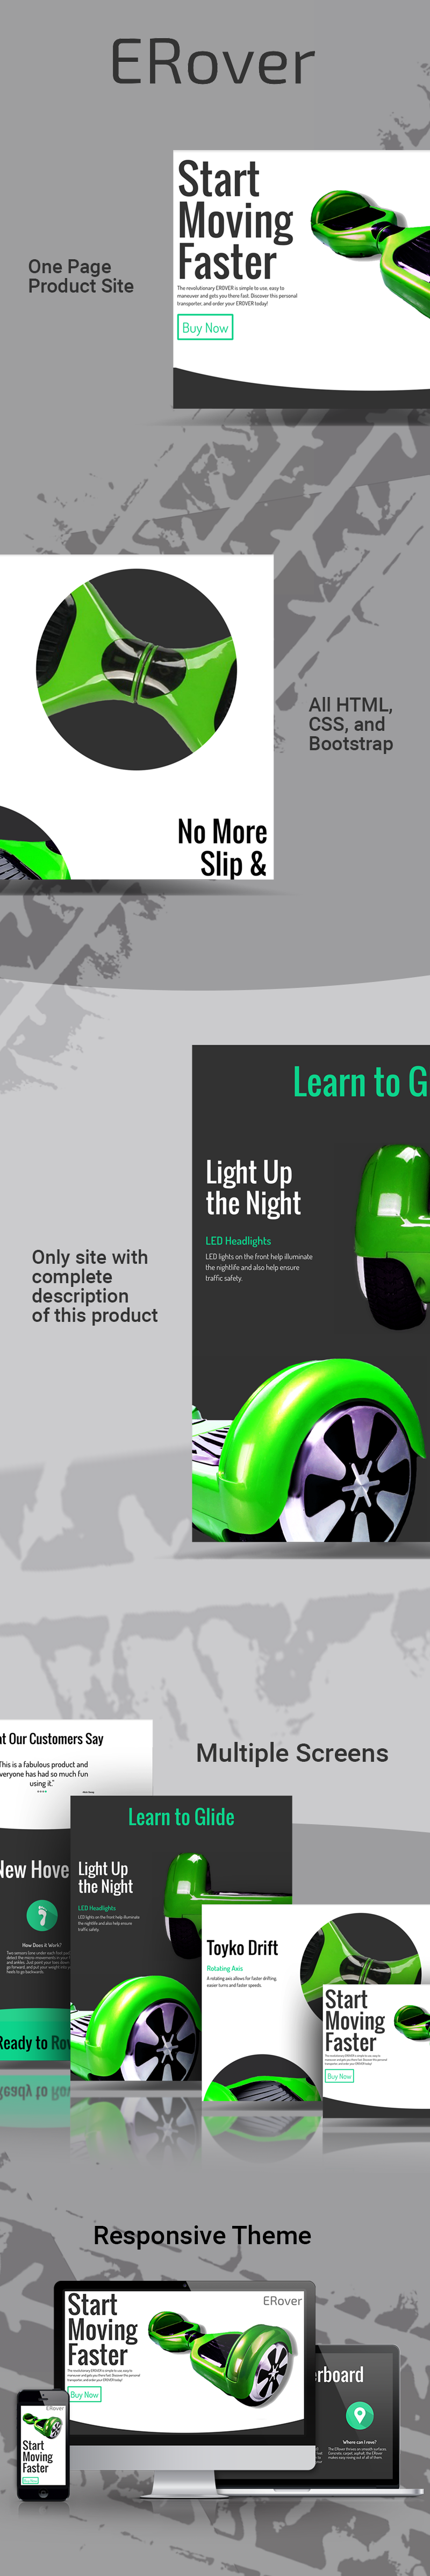 one-page site Website Product Site